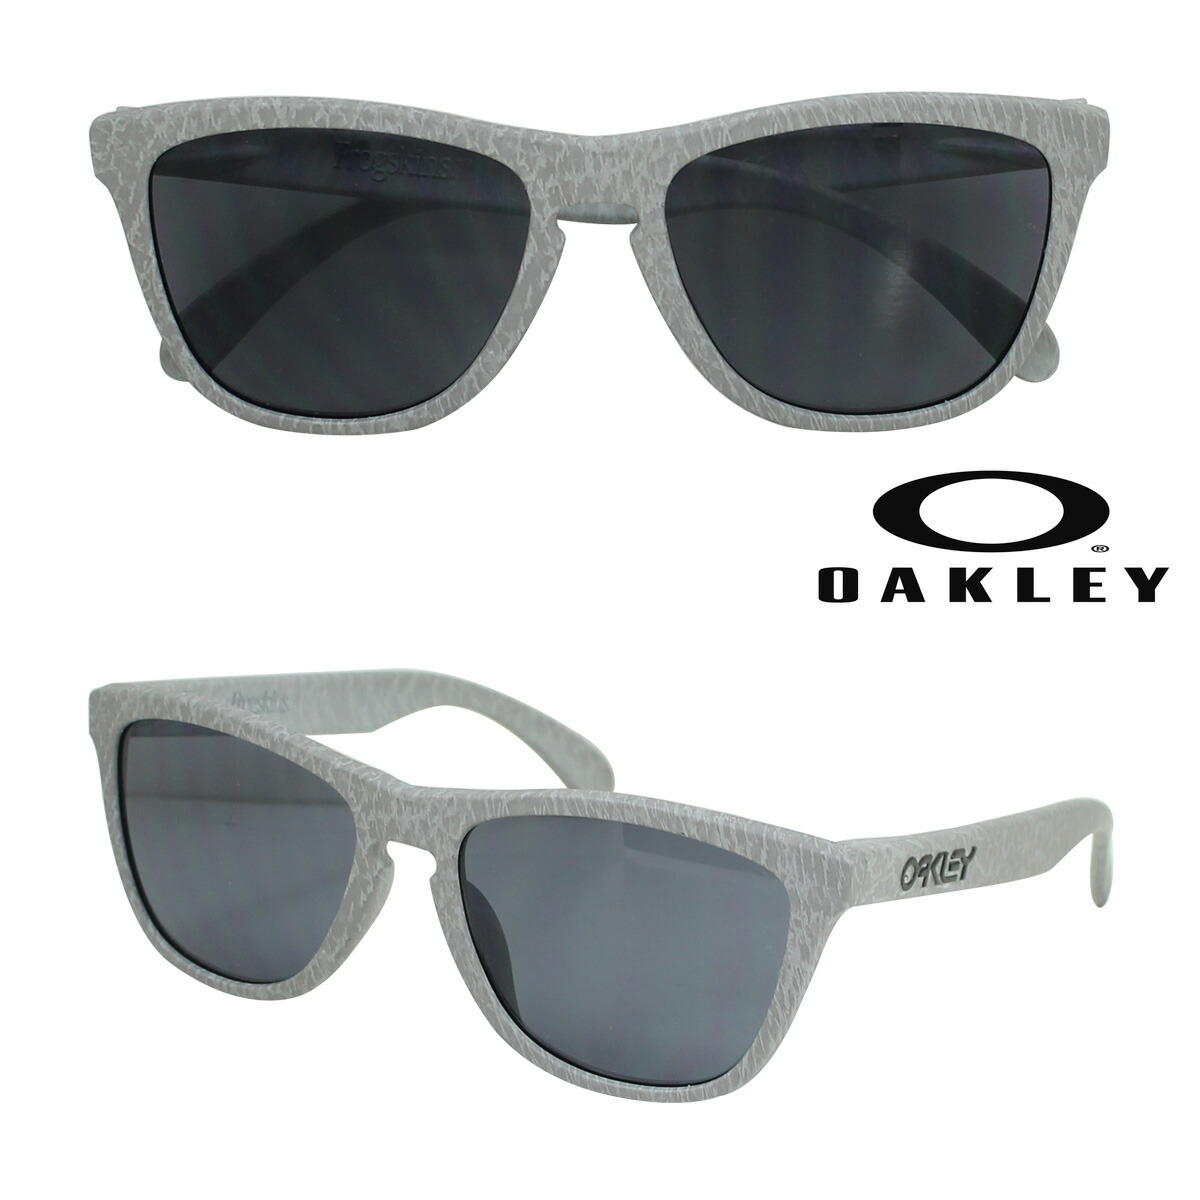 oakley womens sunglasses asian fit  oakley oakley sunglasses frogskins asian fit frog skin asian fitting oo9245 30 smoke grey men's women's